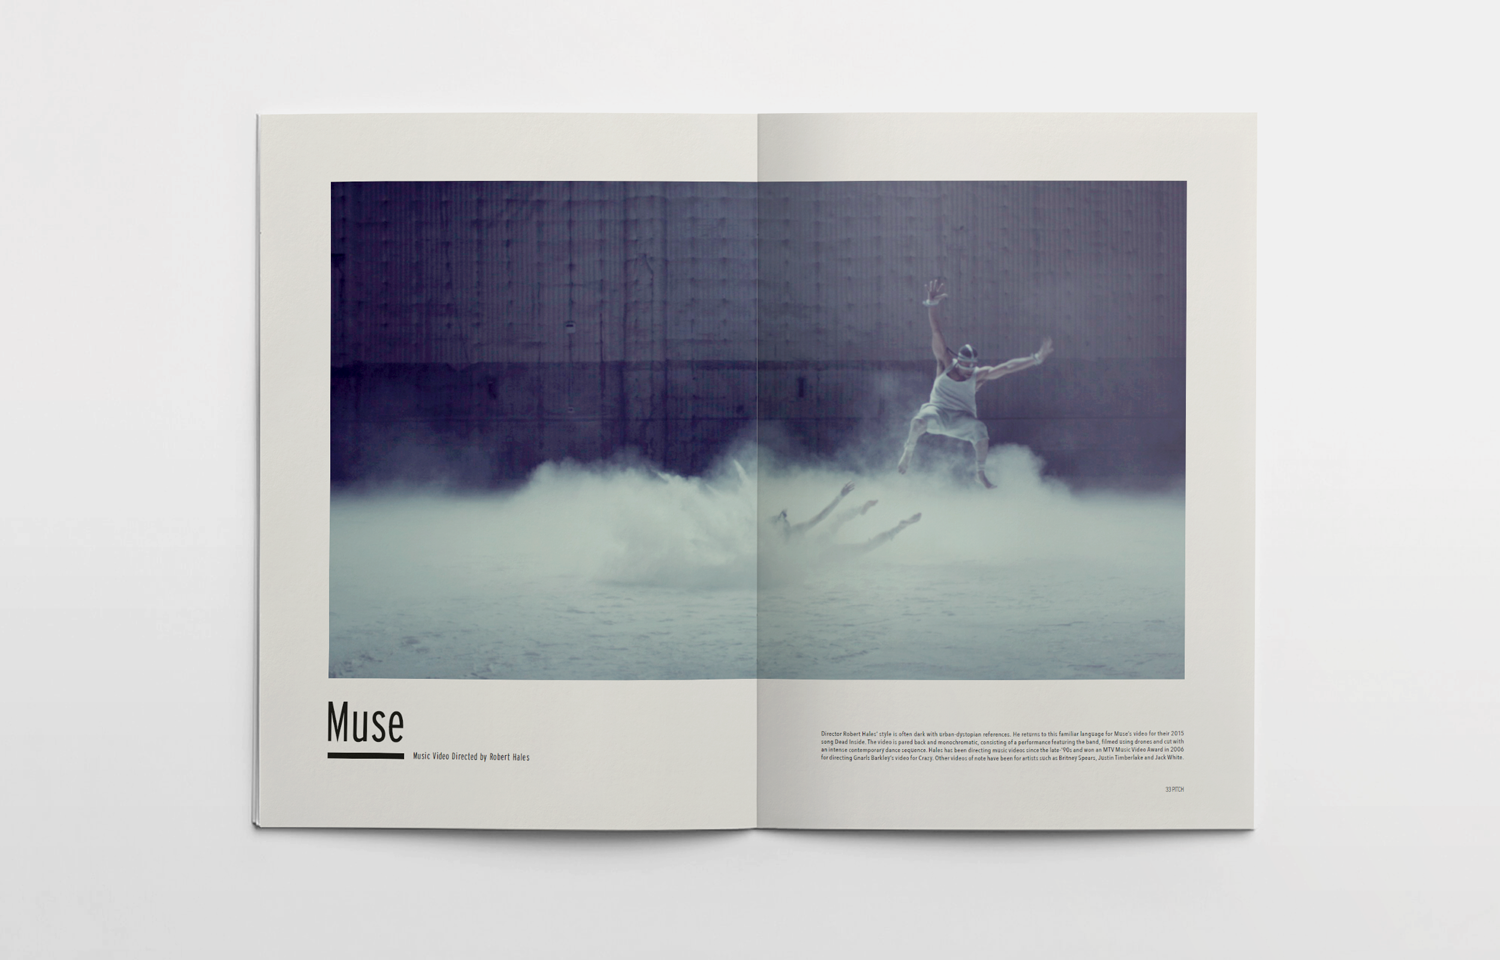 Inside spread for The Pitch Fanzine, issue 3 Muse.